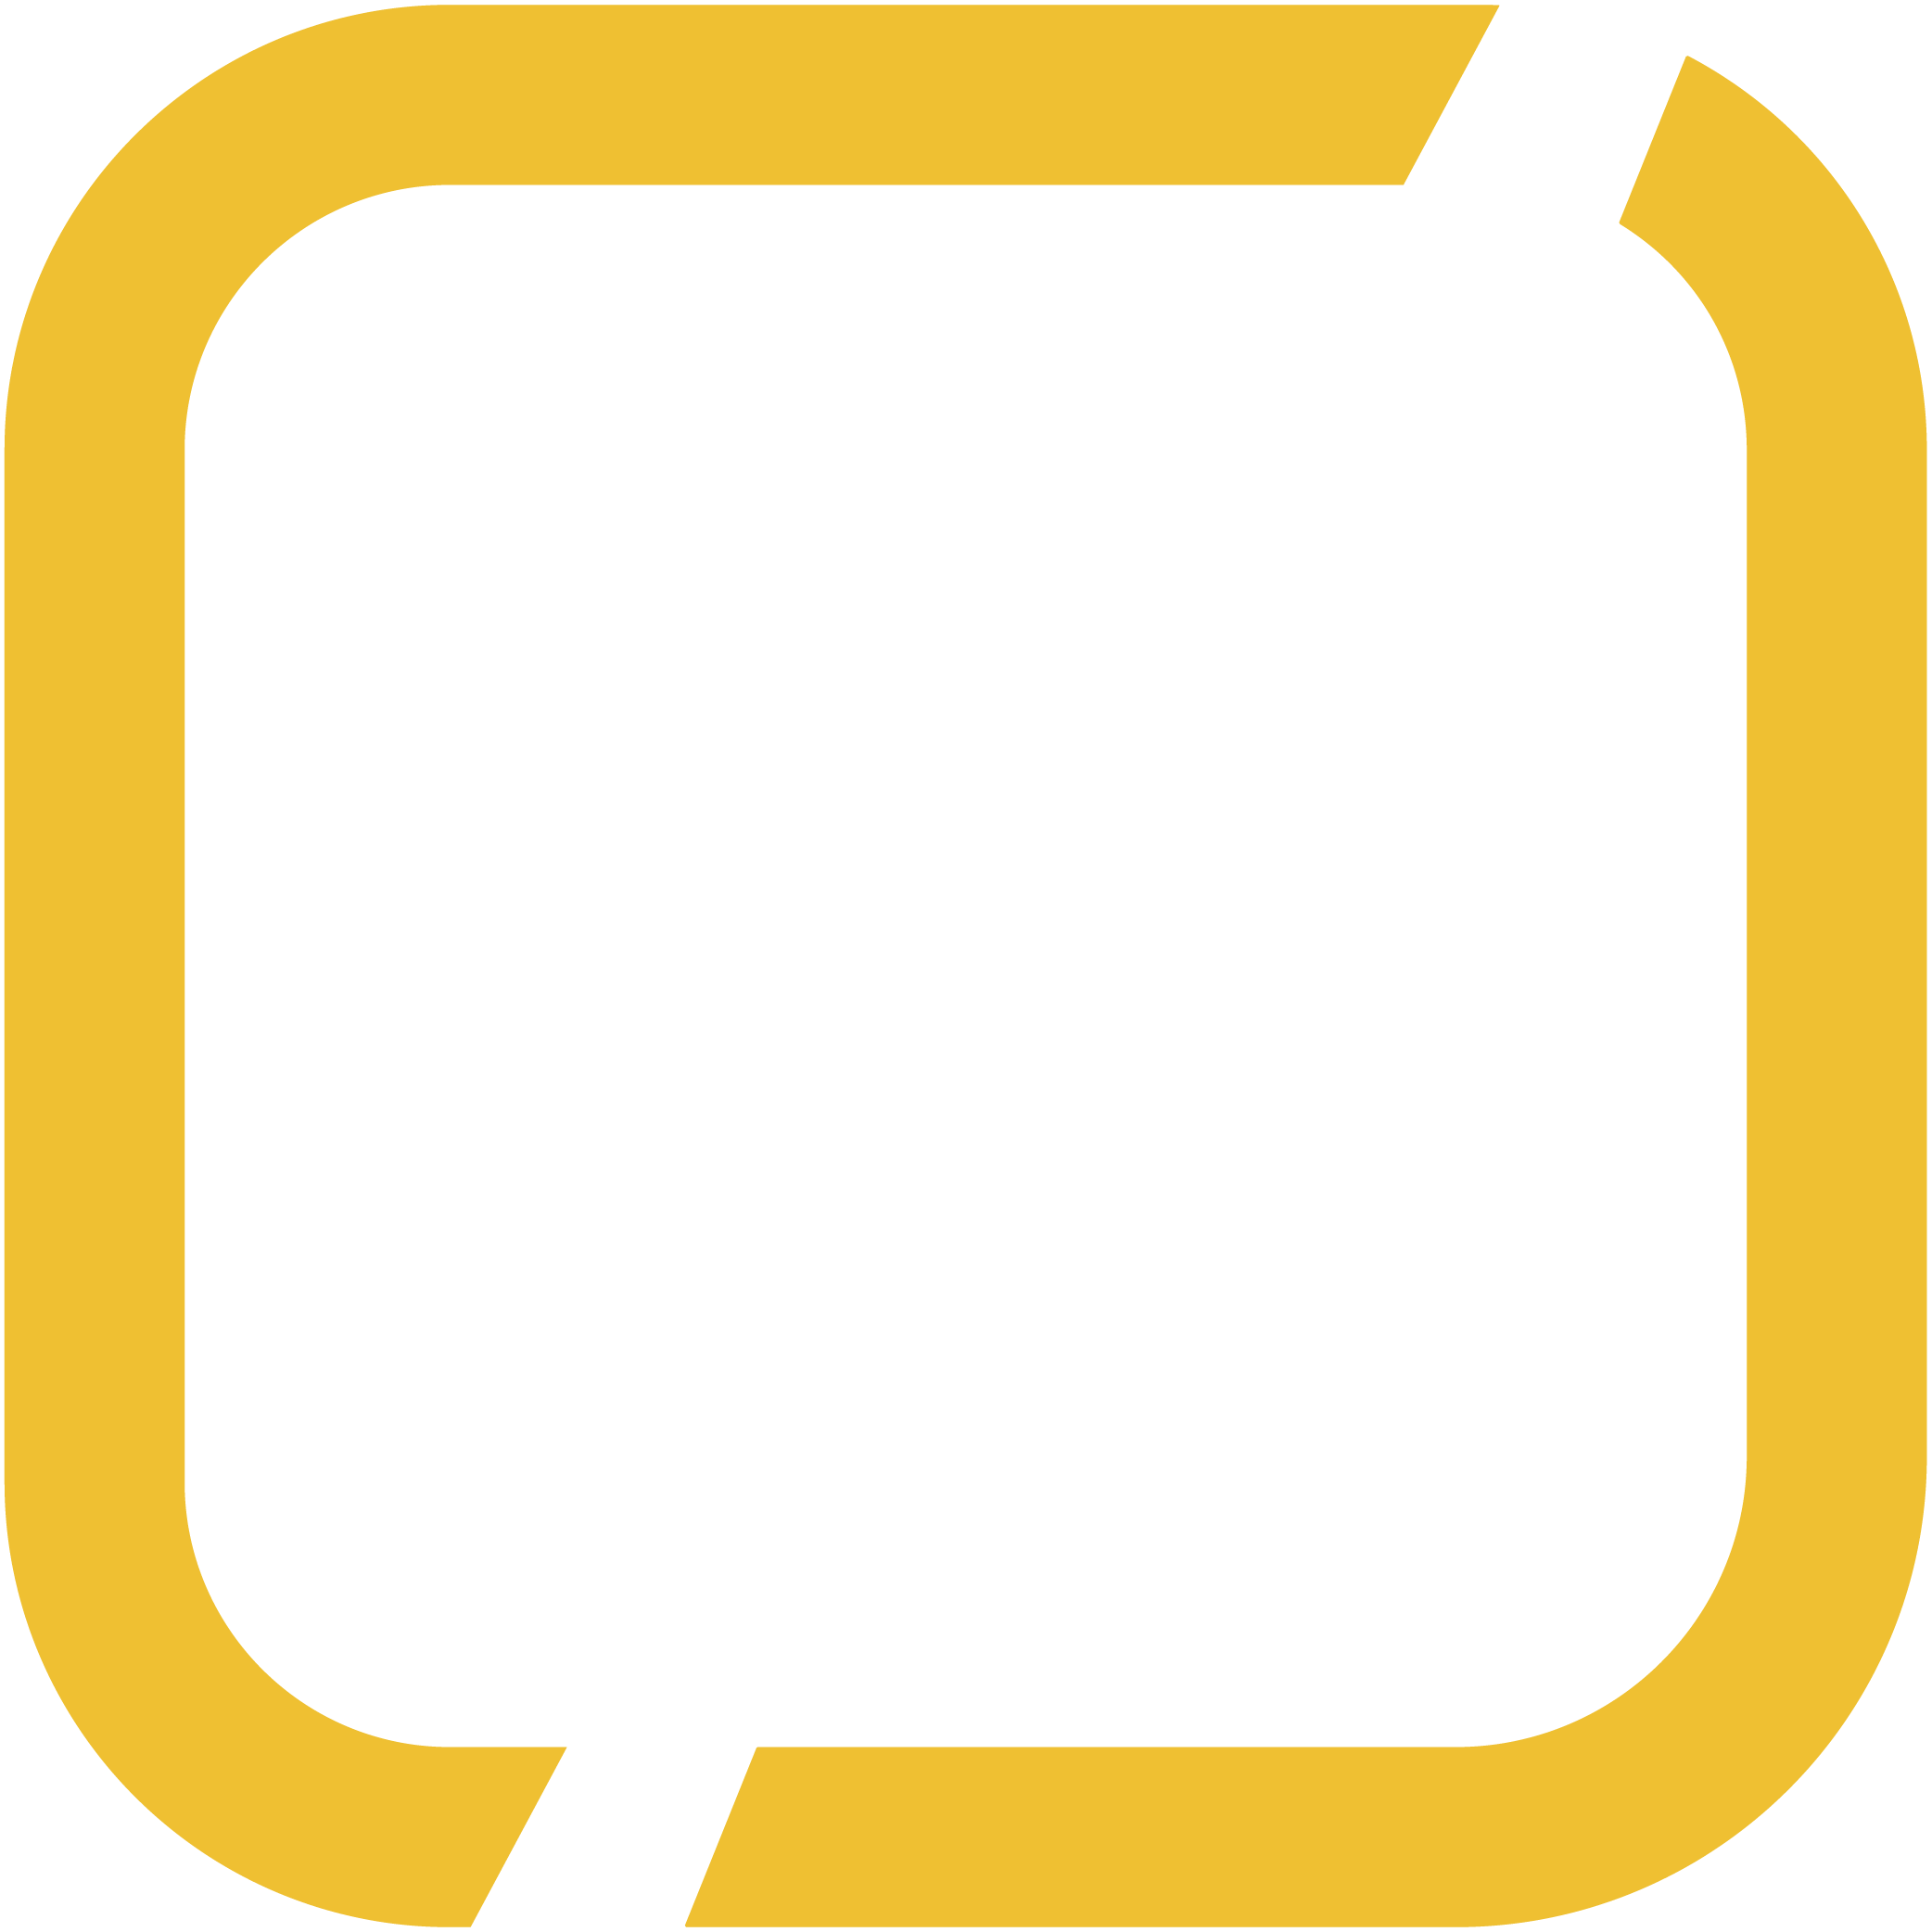 65% of of B2B businesses find case studies effective